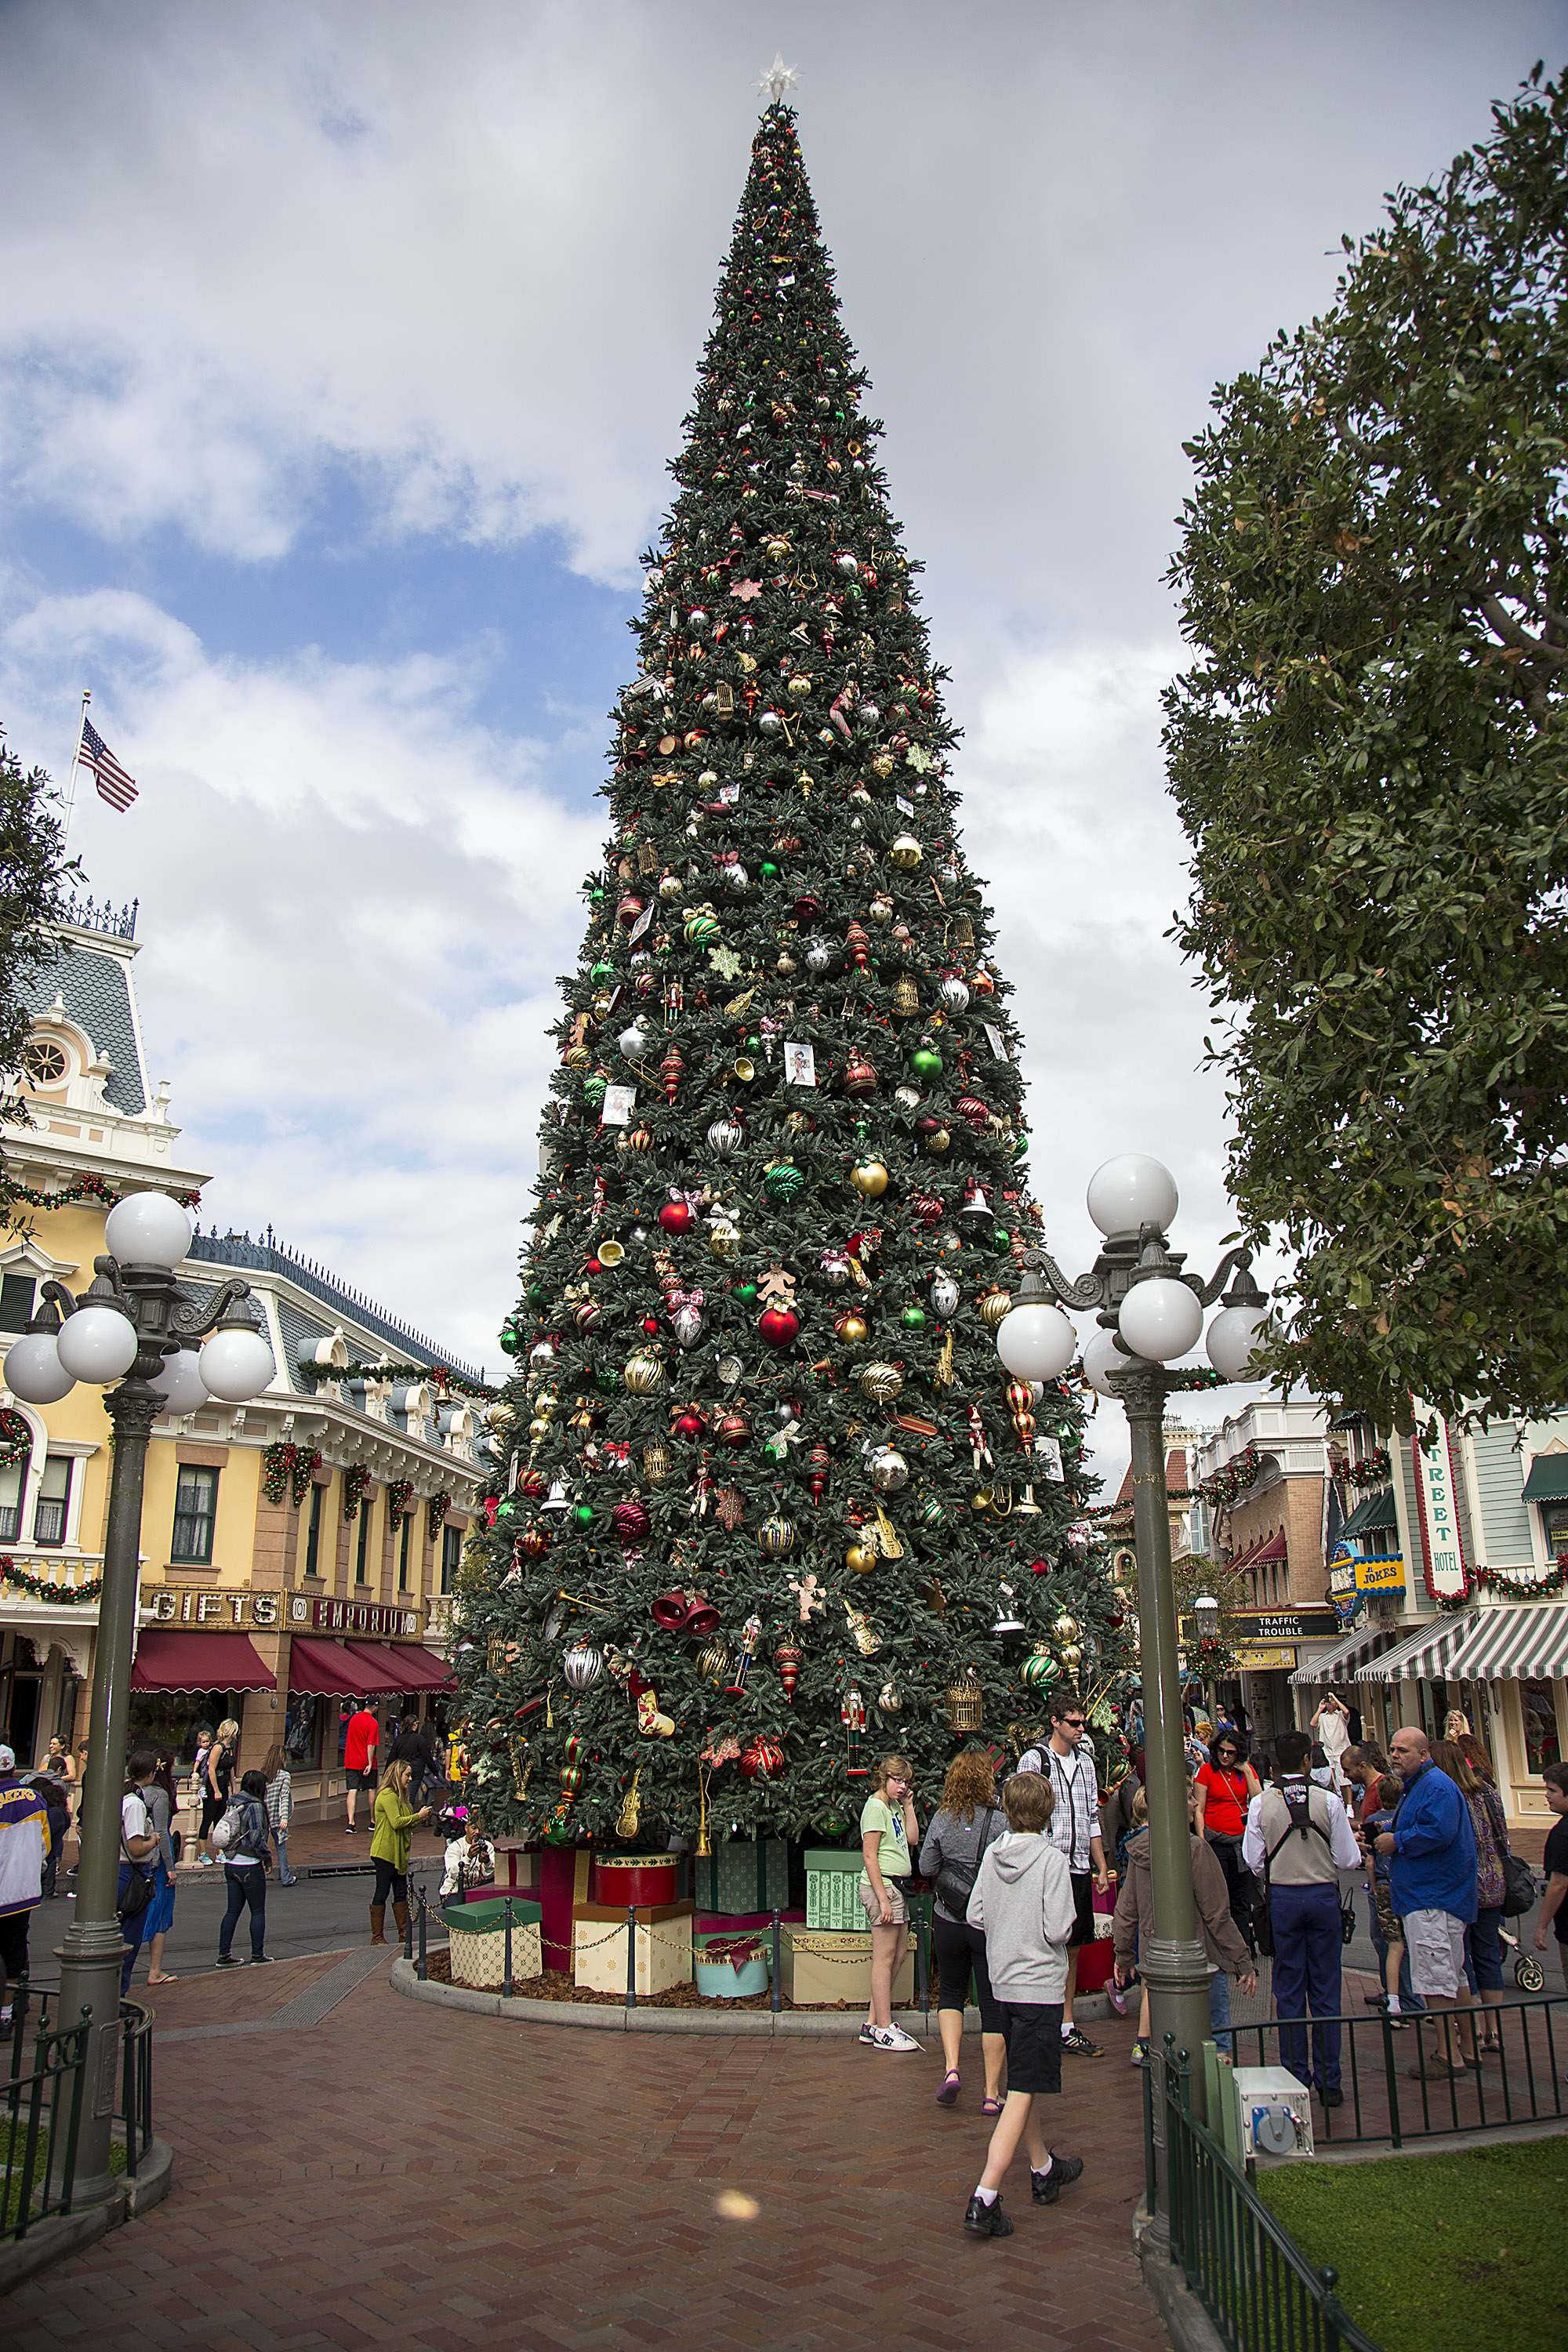 "MAJESTIC CHRISTMAS TREE (ANAHEIM, Calif.) – Just for the Holidays, a towering Christmas tree stands 60 feet tall at Town Square at Disneyland Park, fully adorned with nearly 2,000 ornaments and 800 handmade bows. The Holidays are a magical time to create unforgettable memories with loved ones at the Disneyland Resort. This merry season runs Nov. 13 through Jan. 6, 2016, as Disneyland Park becomes a dazzling winter wonderland with festive décor, holiday-themed treats and attractions transformed for the season – ""it's a small world"" Holiday and Haunted Mansion Holiday. This year, the Diamond Celebration adds even more sparkle to the exciting entertainment, which includes ""A Christmas Fantasy"" parade, ""Disney ¡Viva Navidad!,"" ""Paint the Night"" nighttime parade and the ""Disneyland Forever"" fireworks spectacular. (Paul Hiffmeyer/Disneyland Resort)"